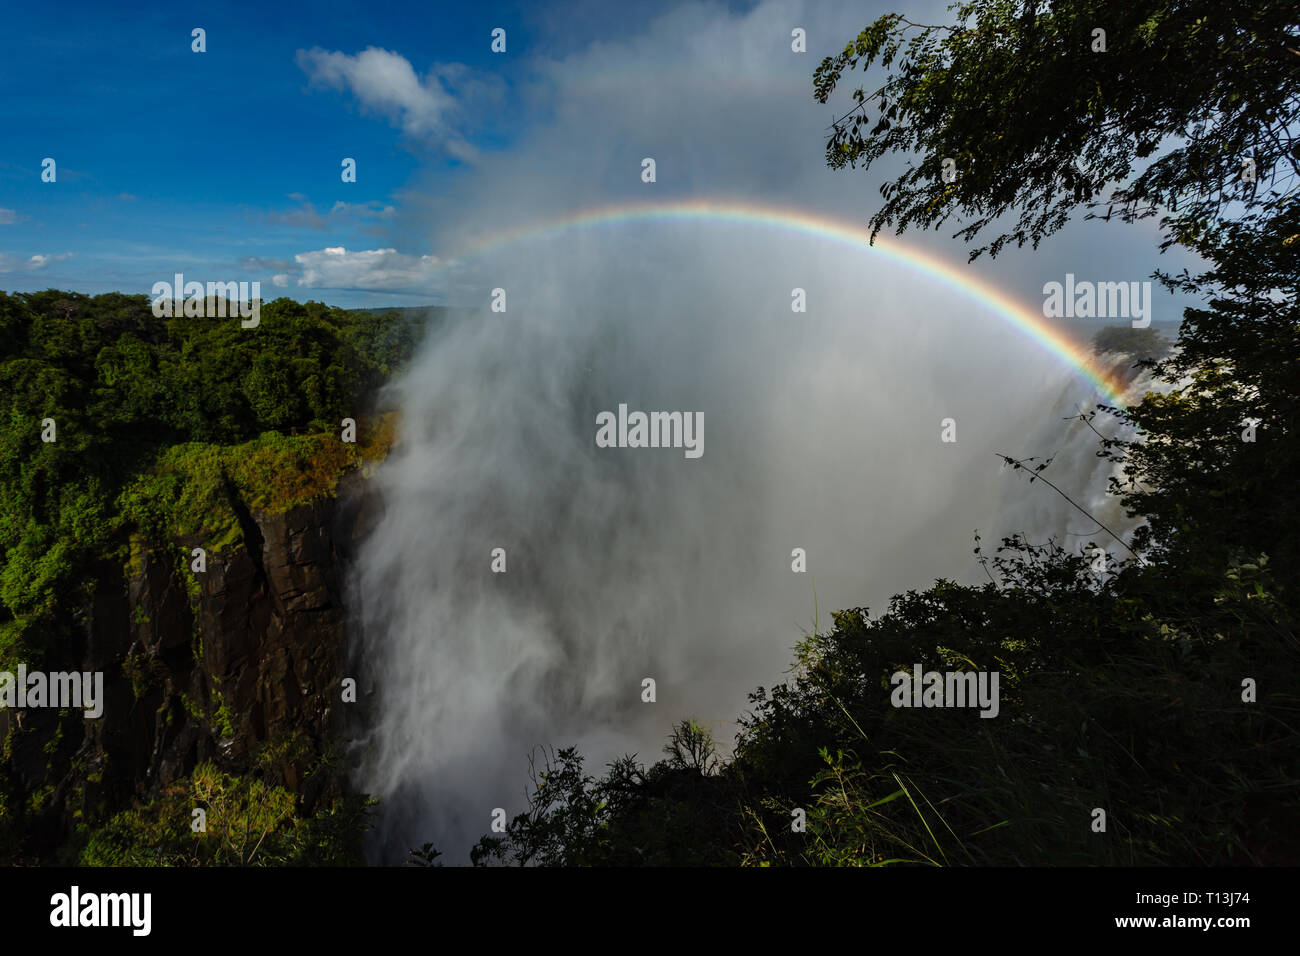 Brilliantly colored rainbow rises high in the mist over Victoria Falls Africa - Stock Image